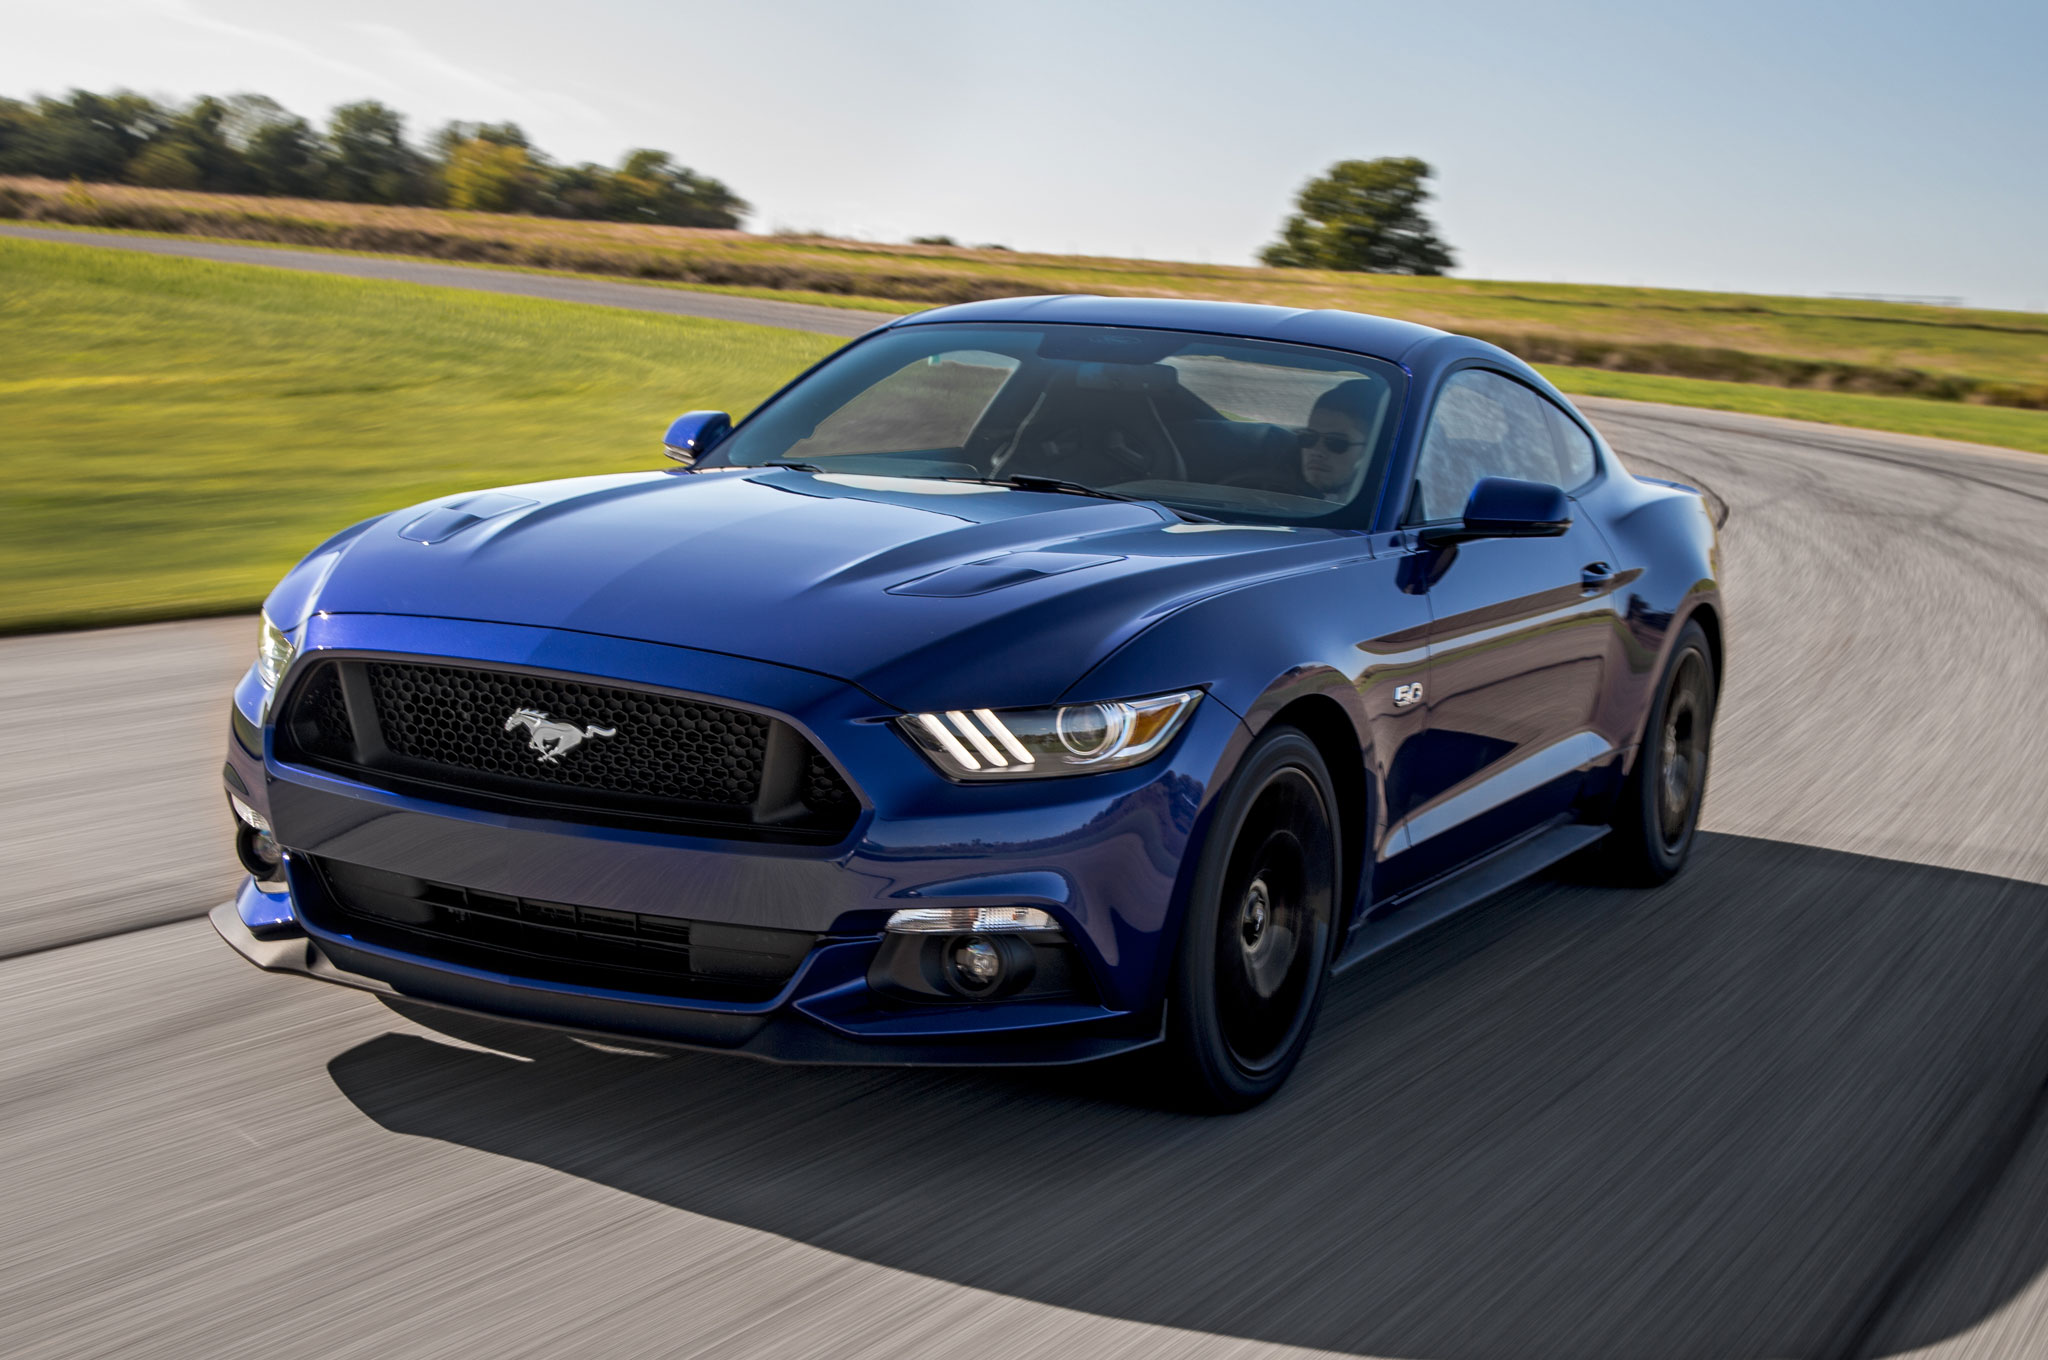 2015 ford mustang gt premium front three quarter in motion - Ford Mustang 2015 Blue